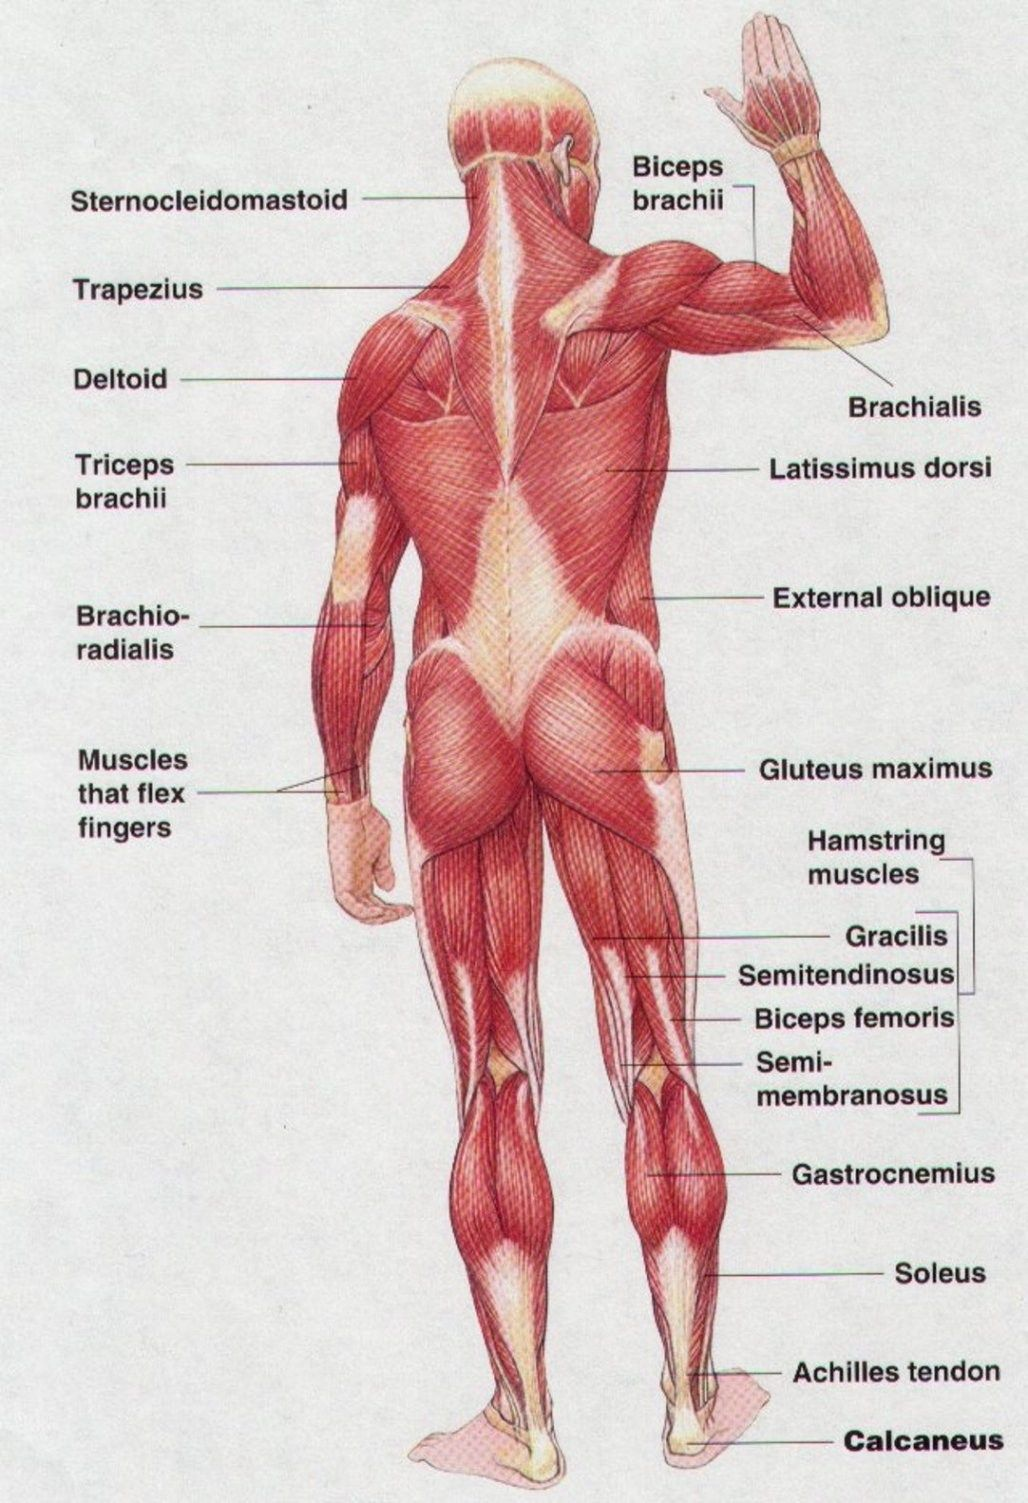 medium resolution of human back muscle diagram human back muscle diagram lower back muscle diagrams labeled muscles human